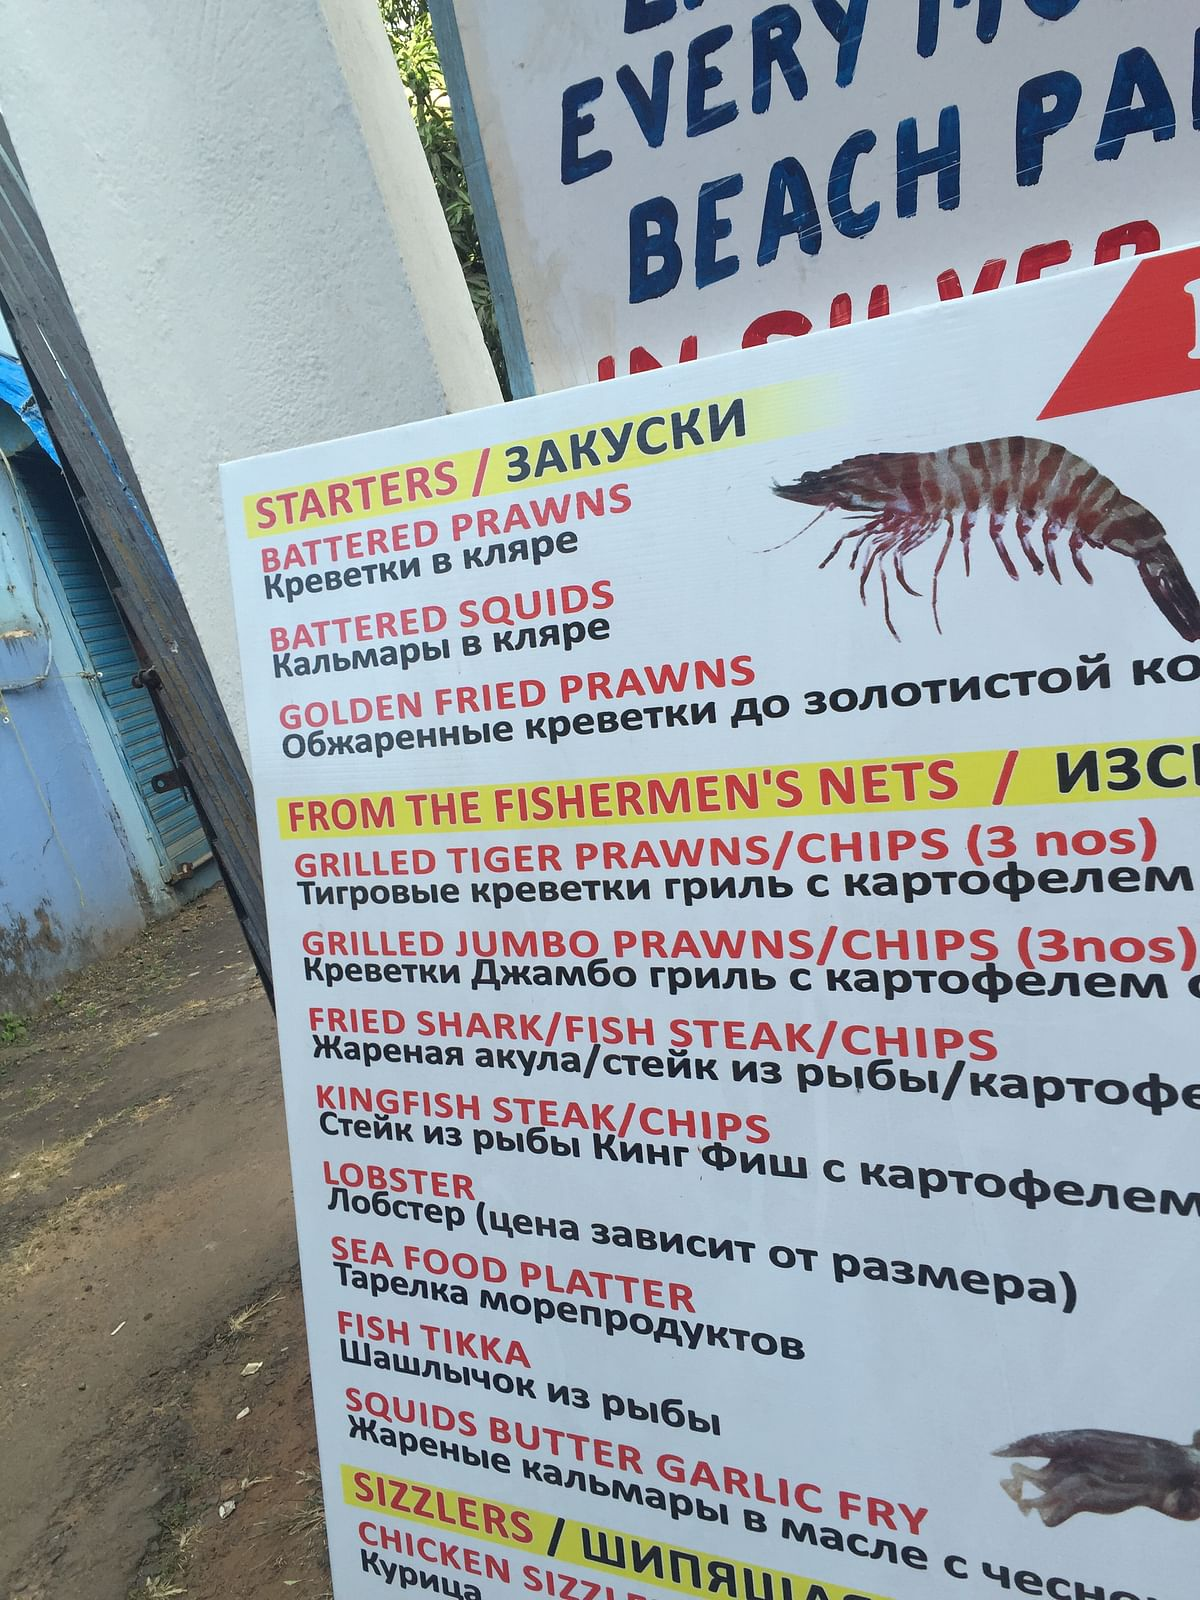 A menu in Goa, written in Russian. (Photo Courtesy: Jyotsna Mohan Bhargava)